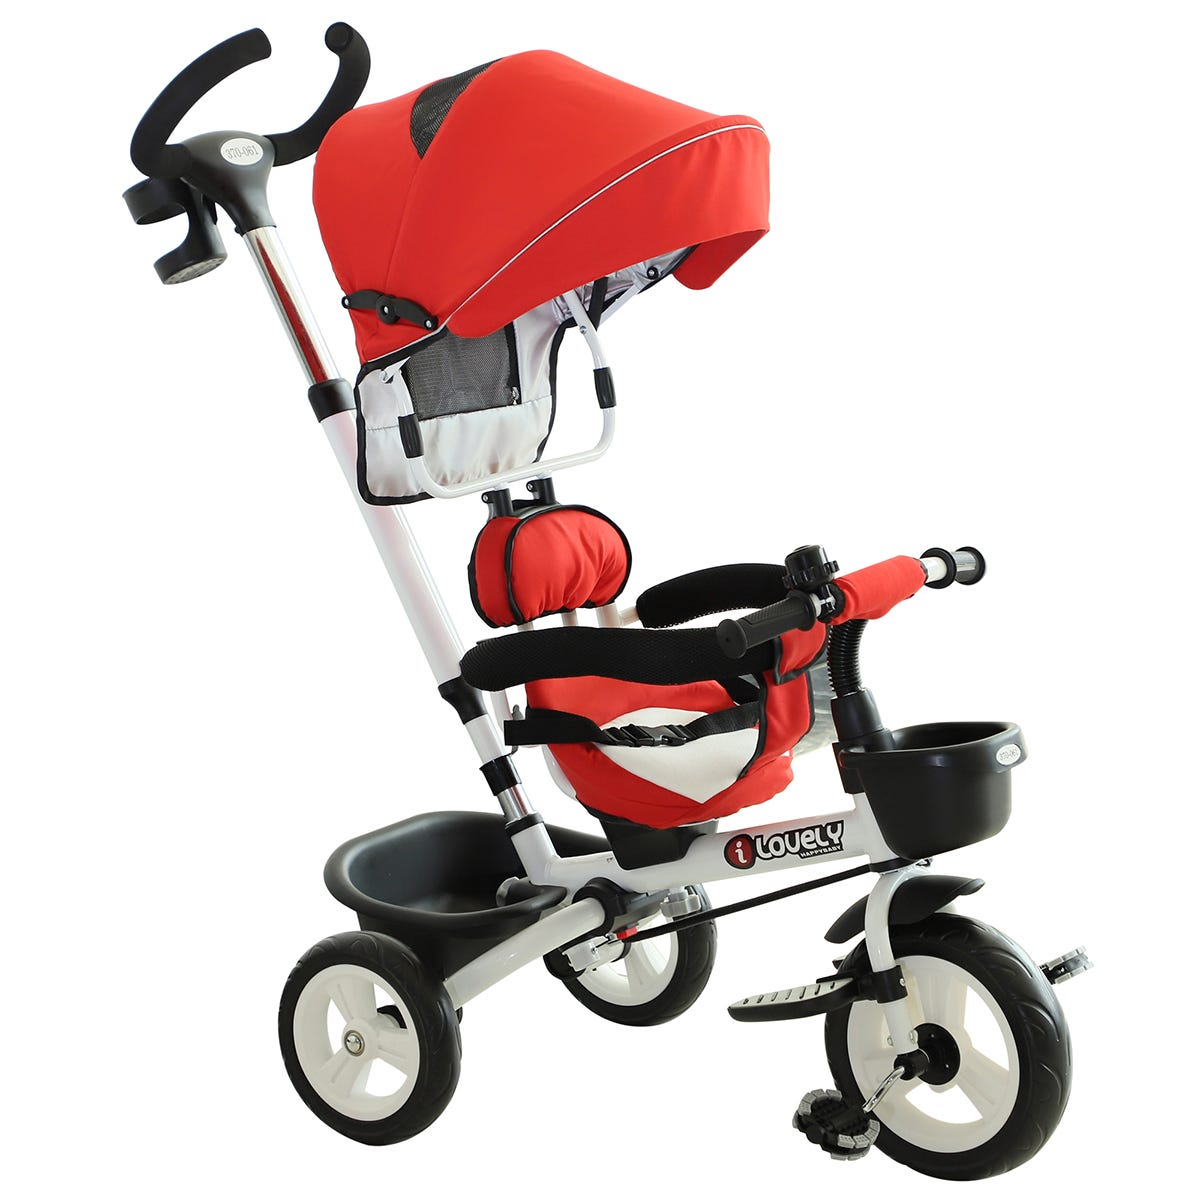 Reiten 4-in-1 Kids Tricycle & Stroller with Canopy - Red